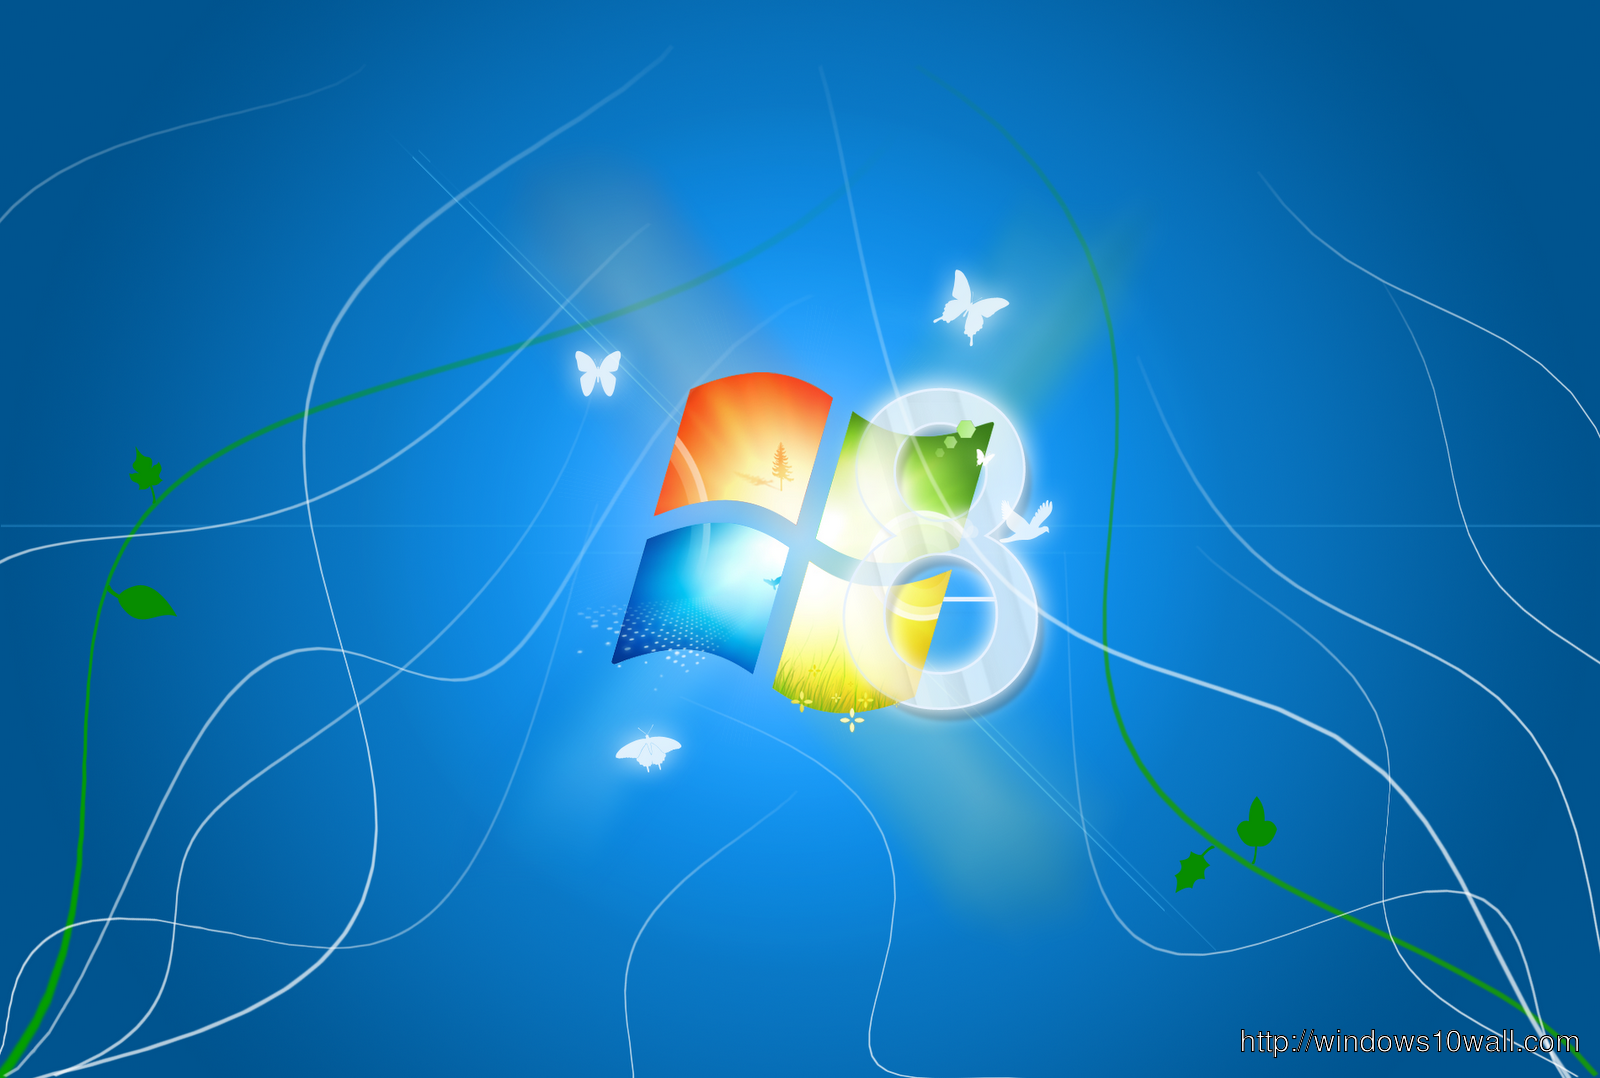 windows 8 hd background wallpaper free